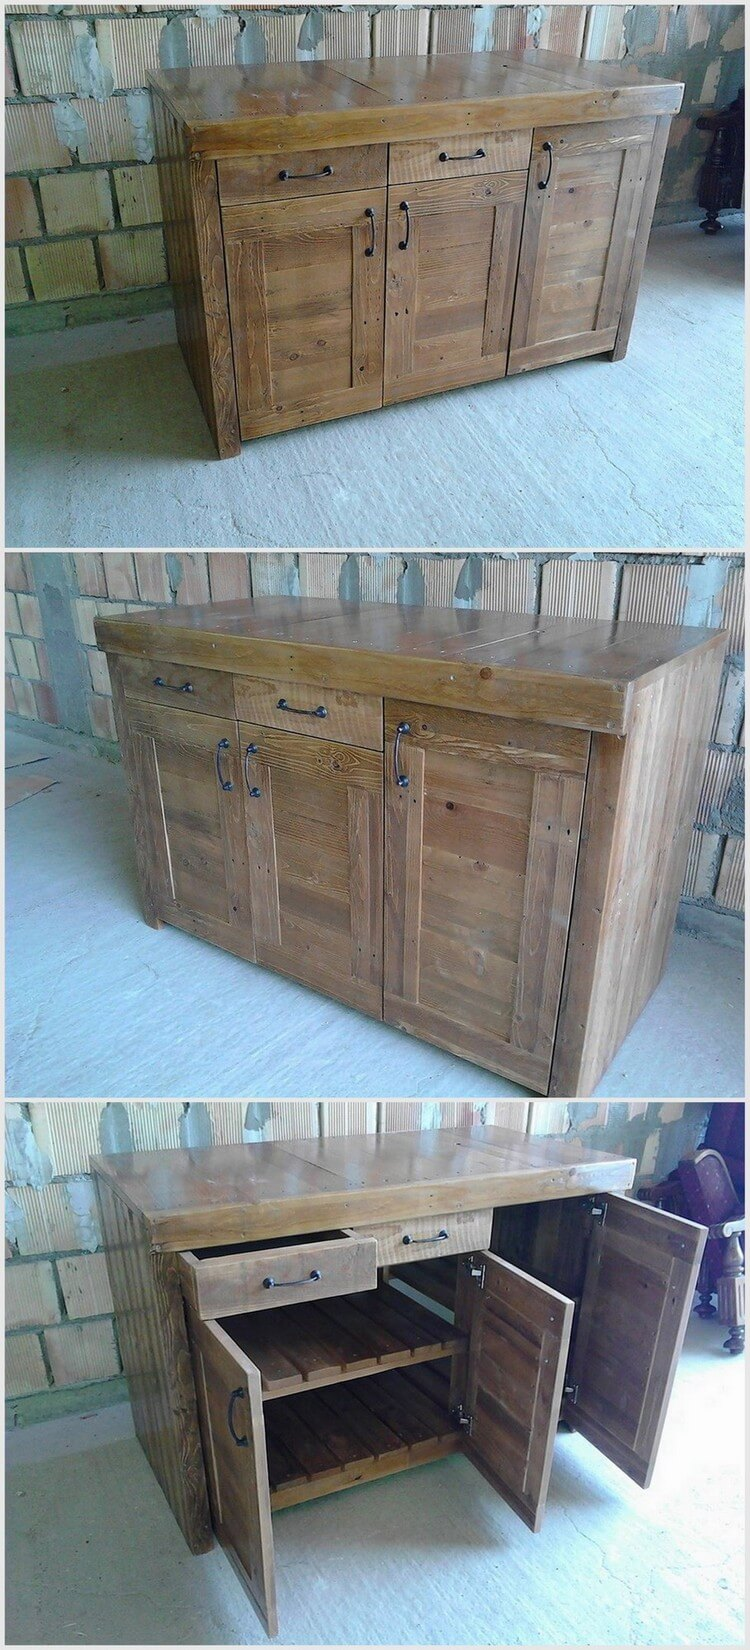 Attractive Wood Pallet Recycling Ideas | Pallet Wood Projects